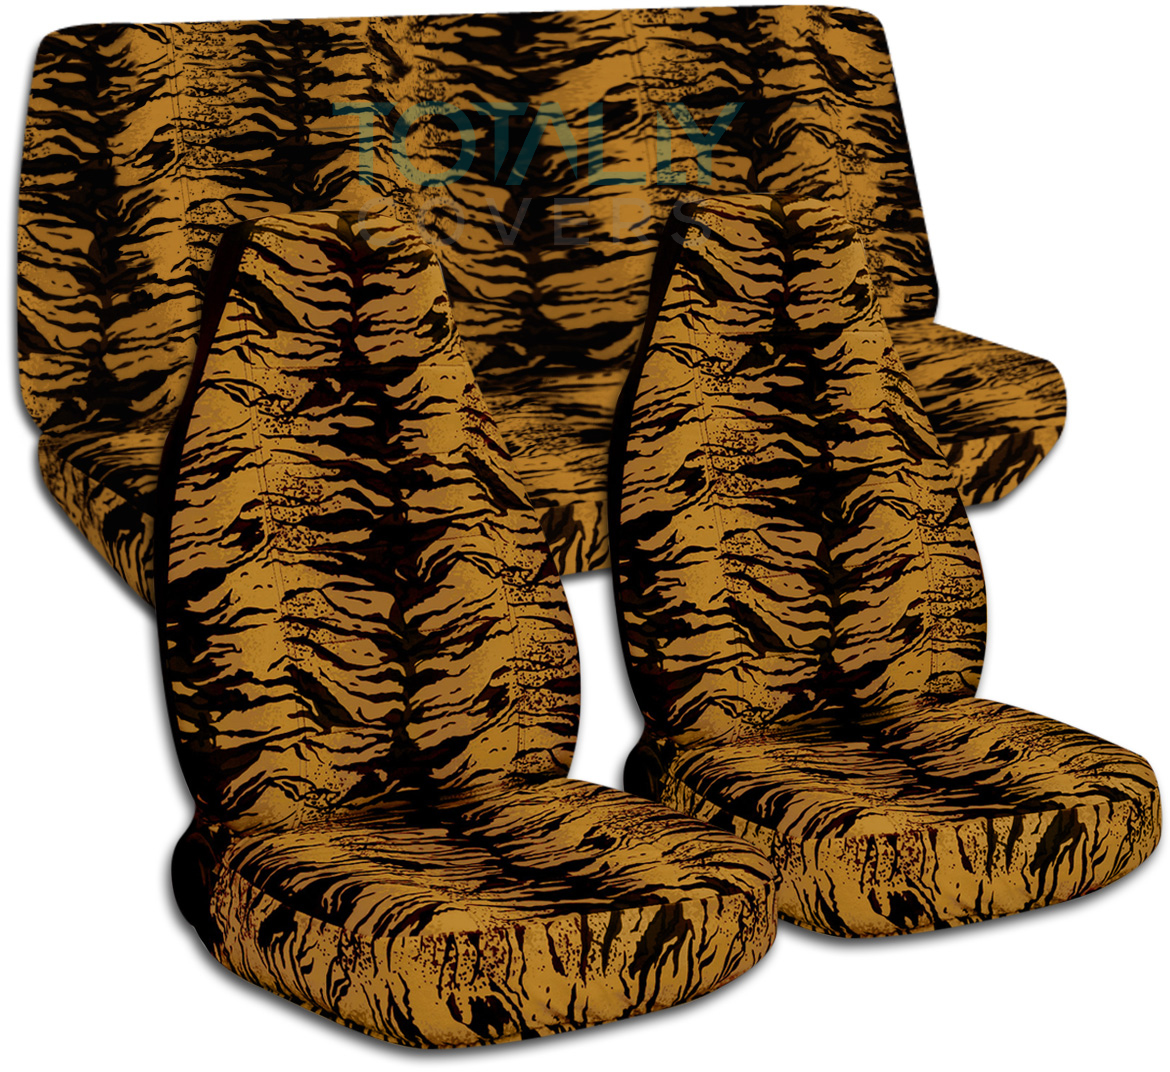 White Tiger Print Car Seat Covers